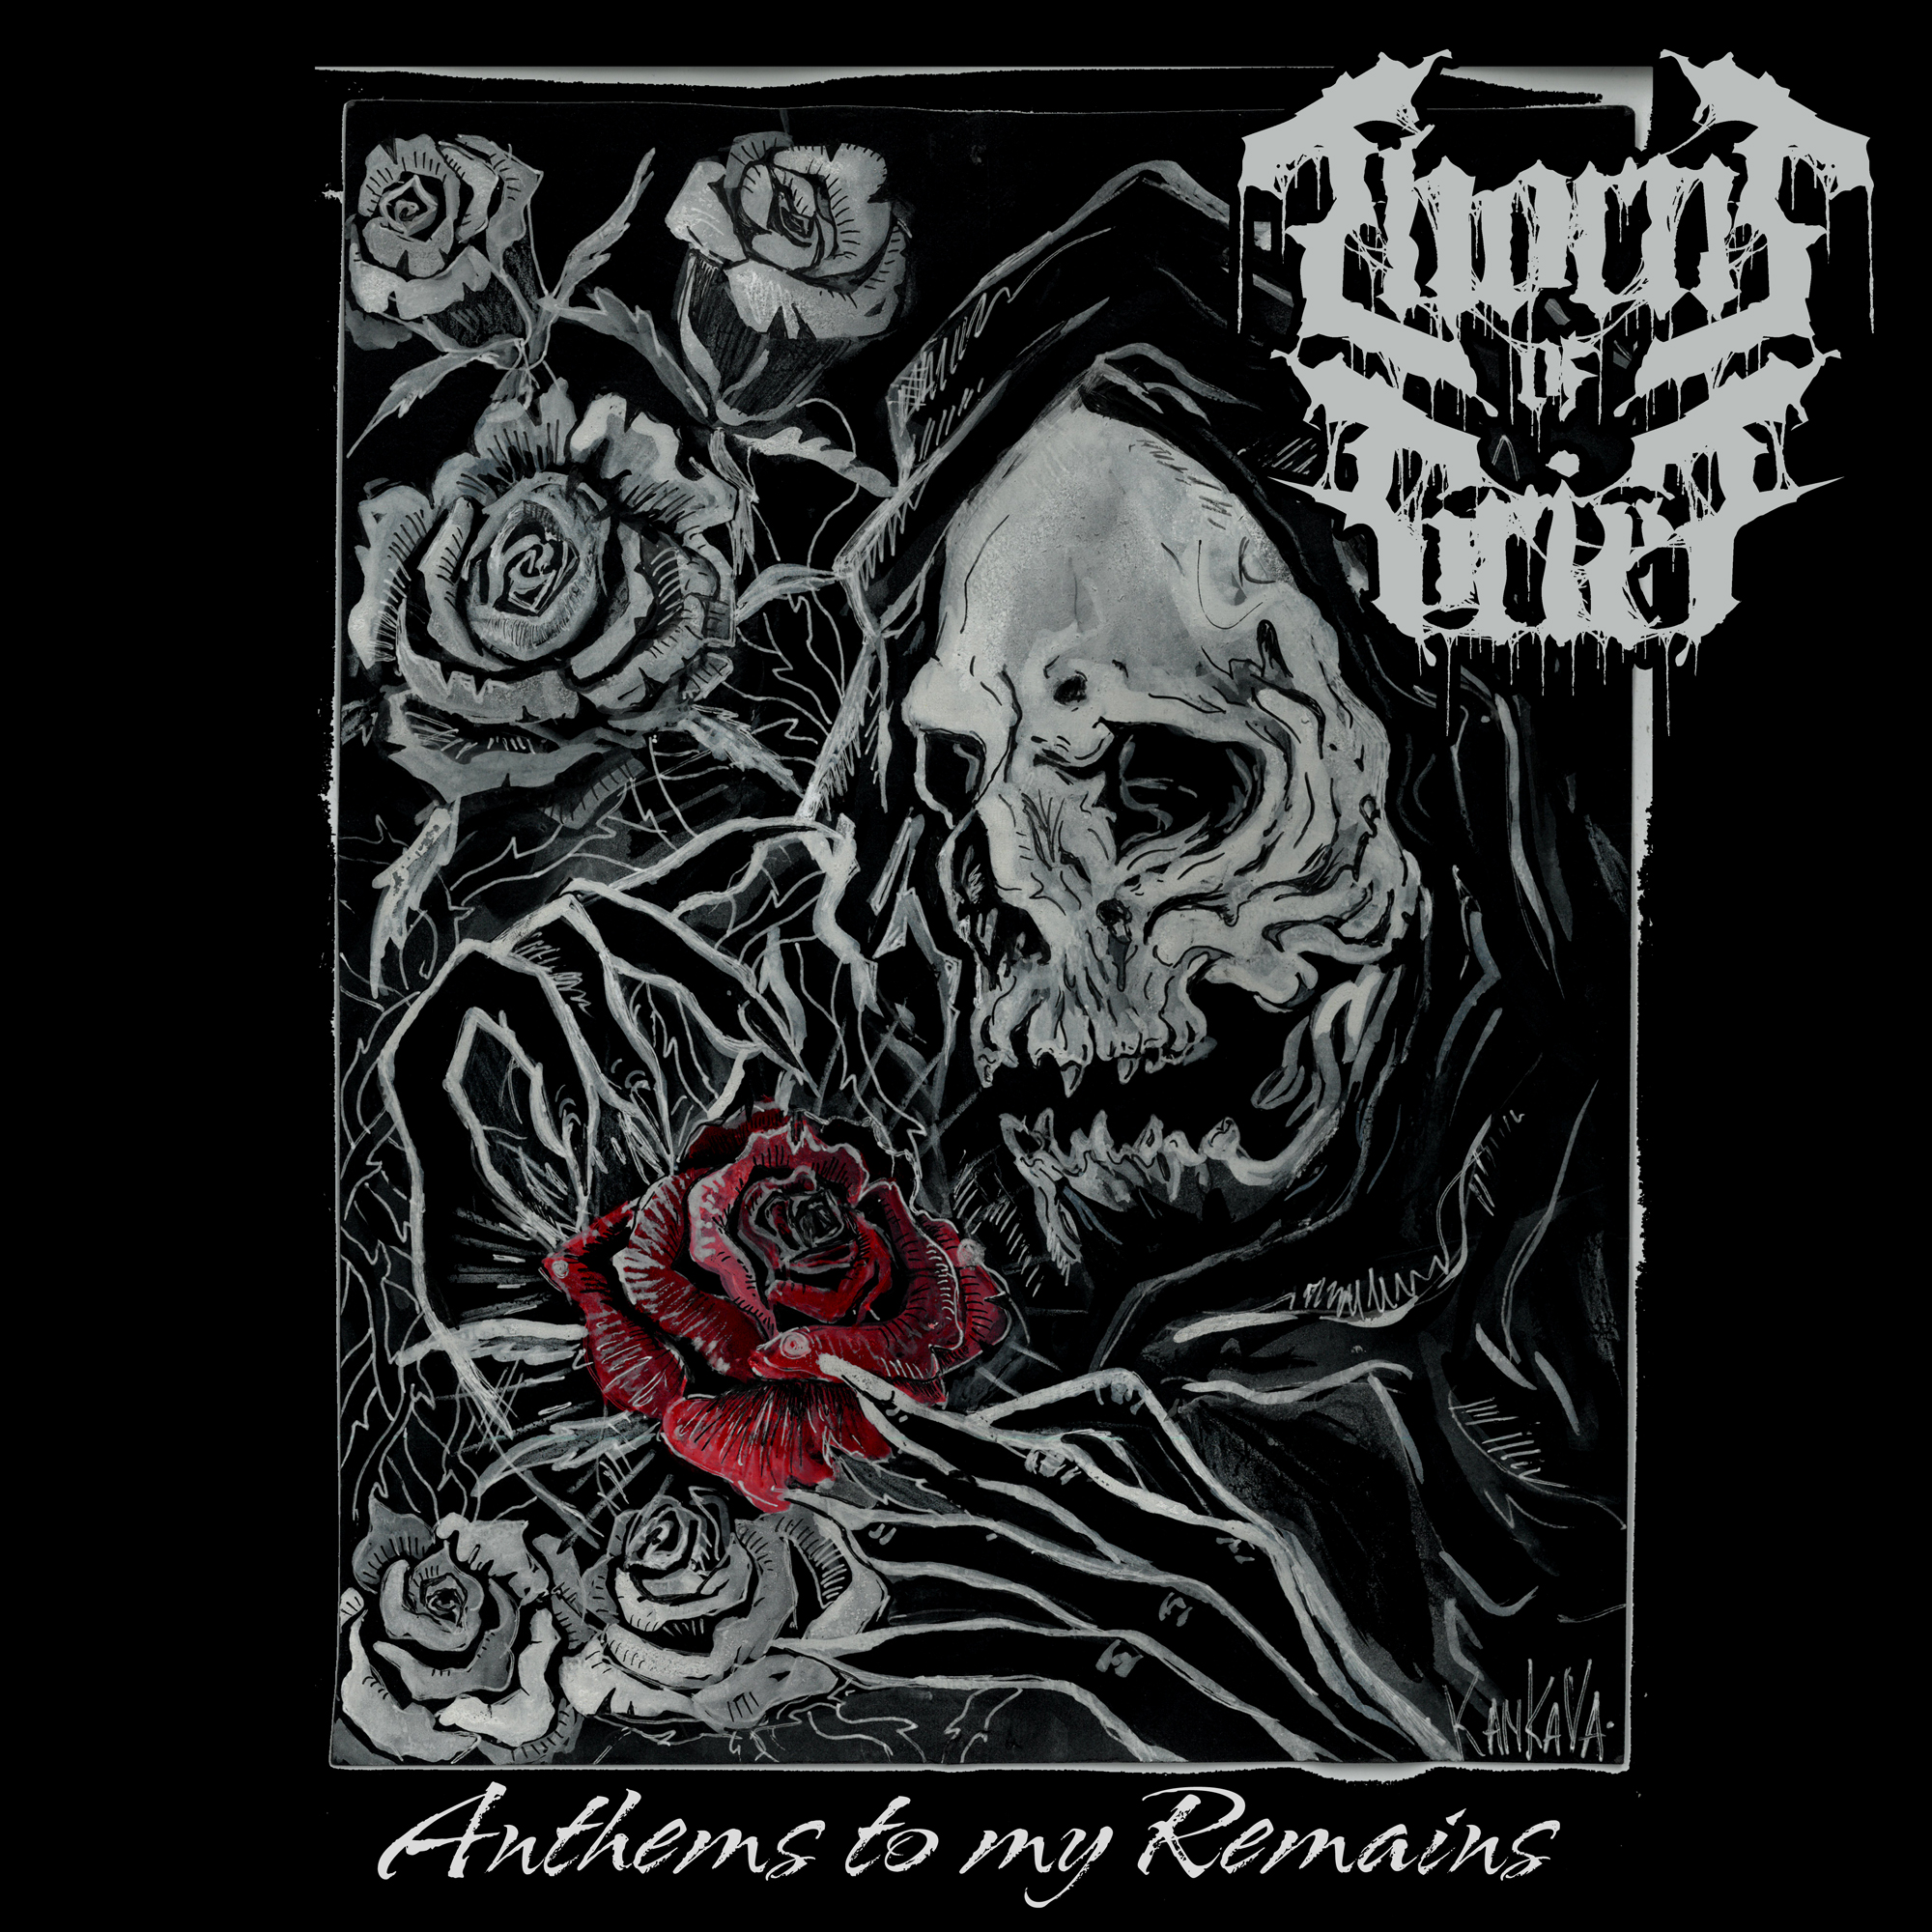 Thorns of Grief